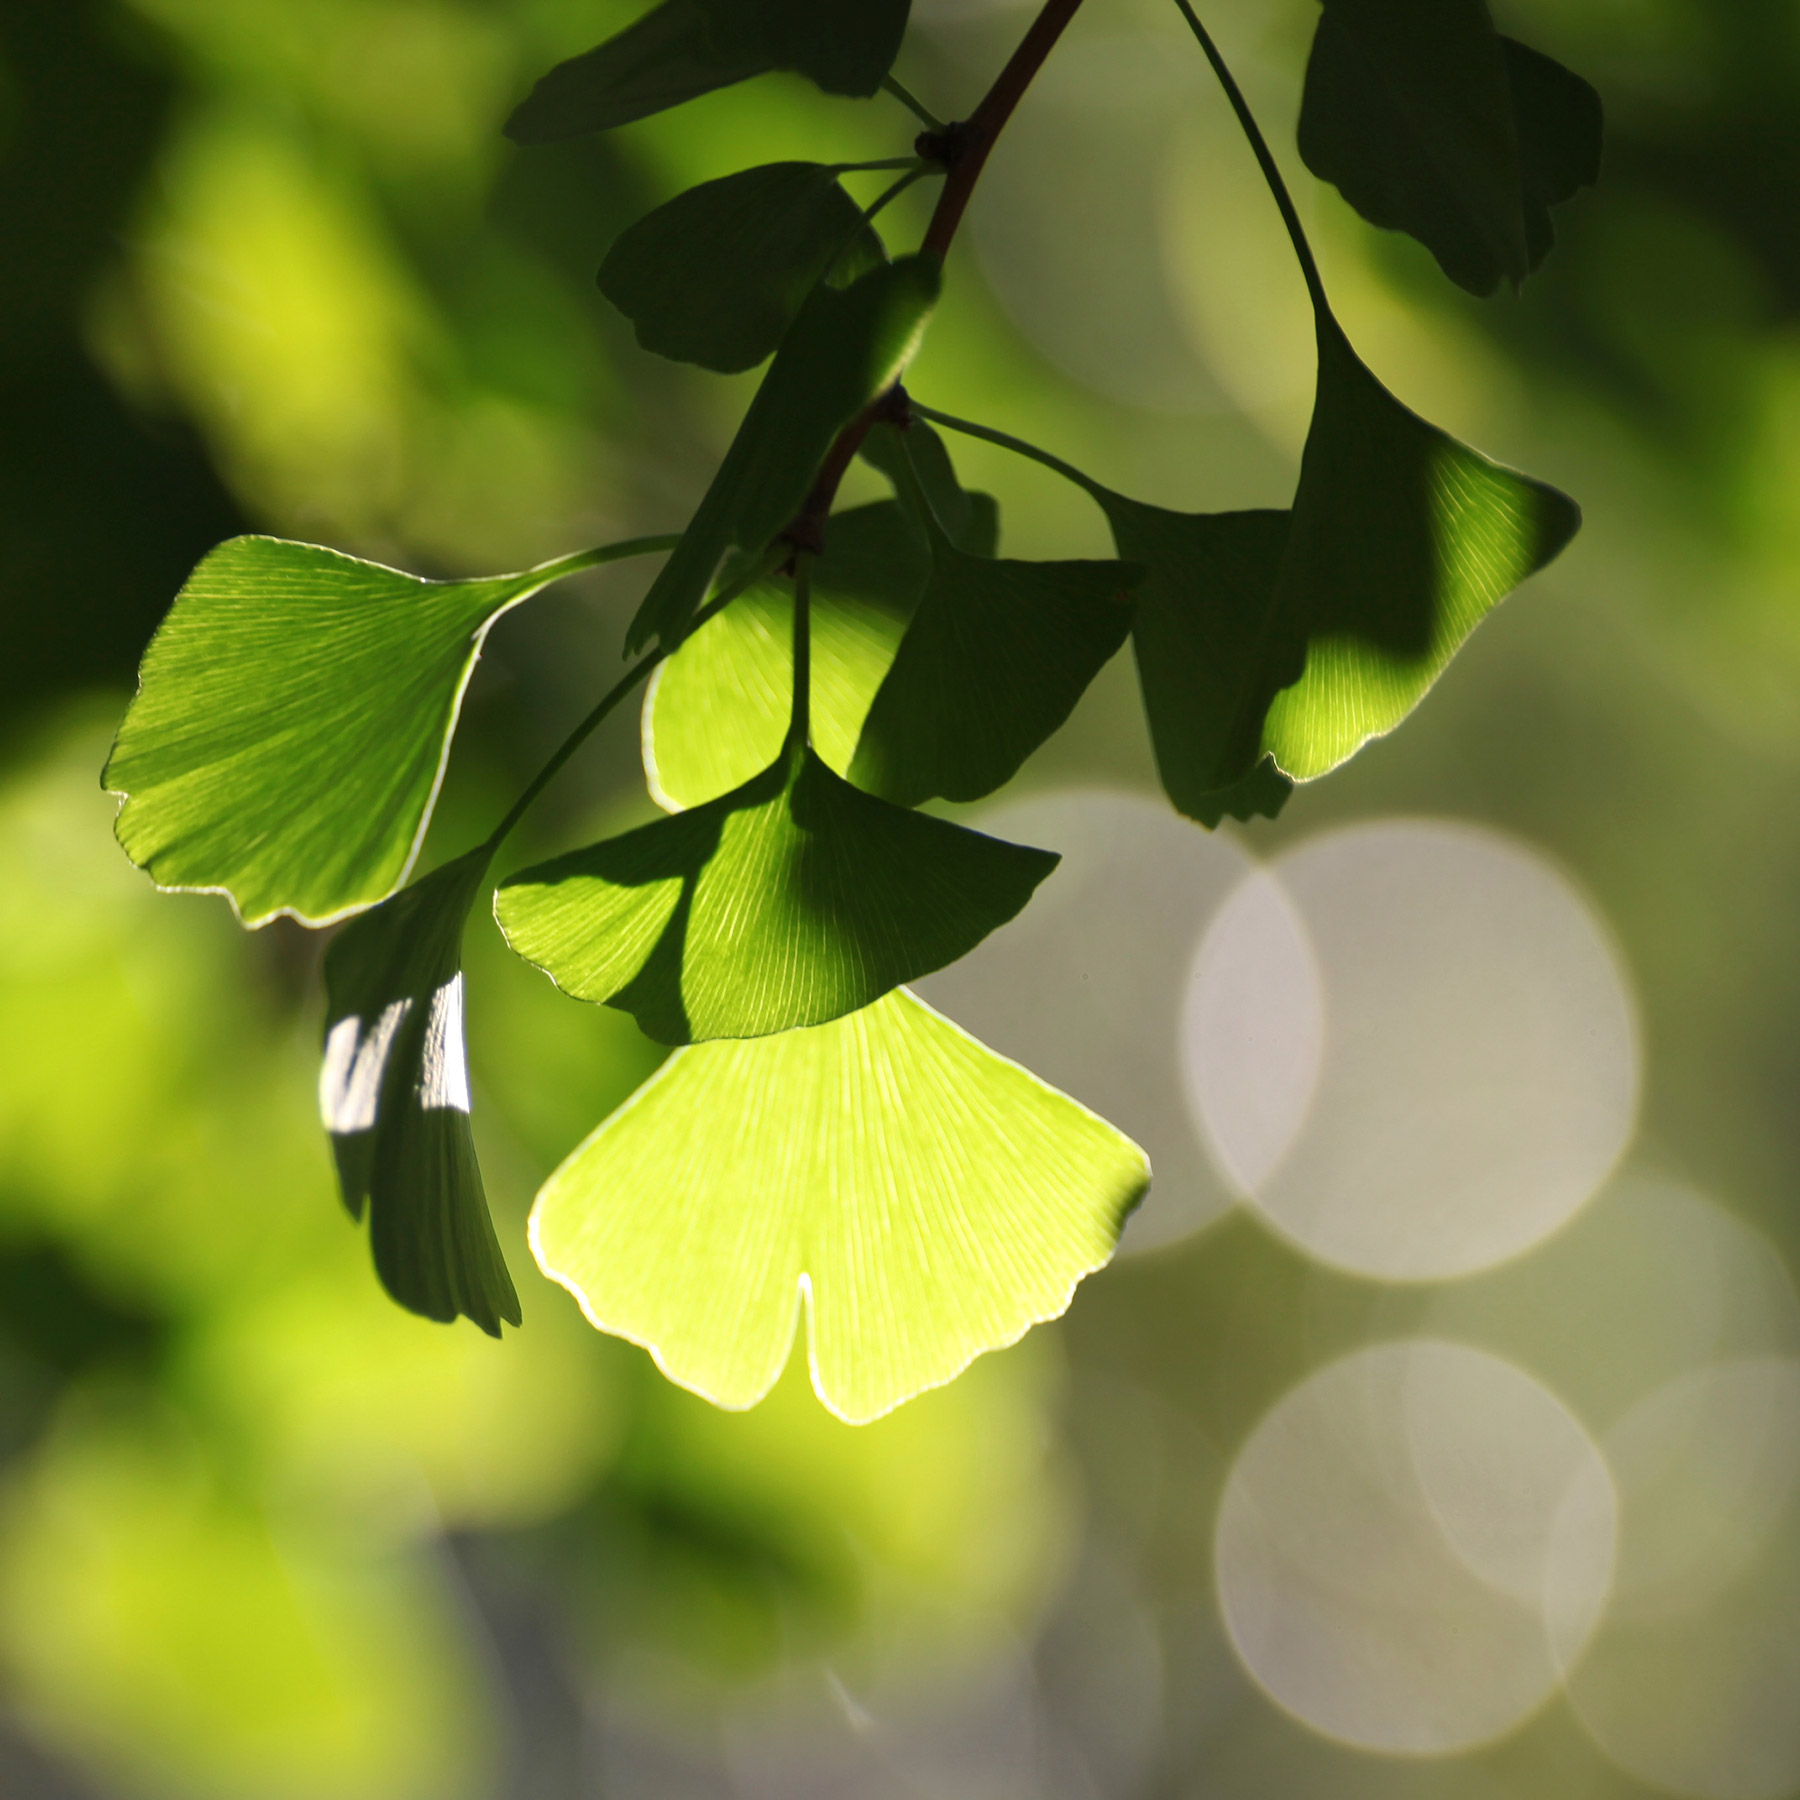 light-leaf